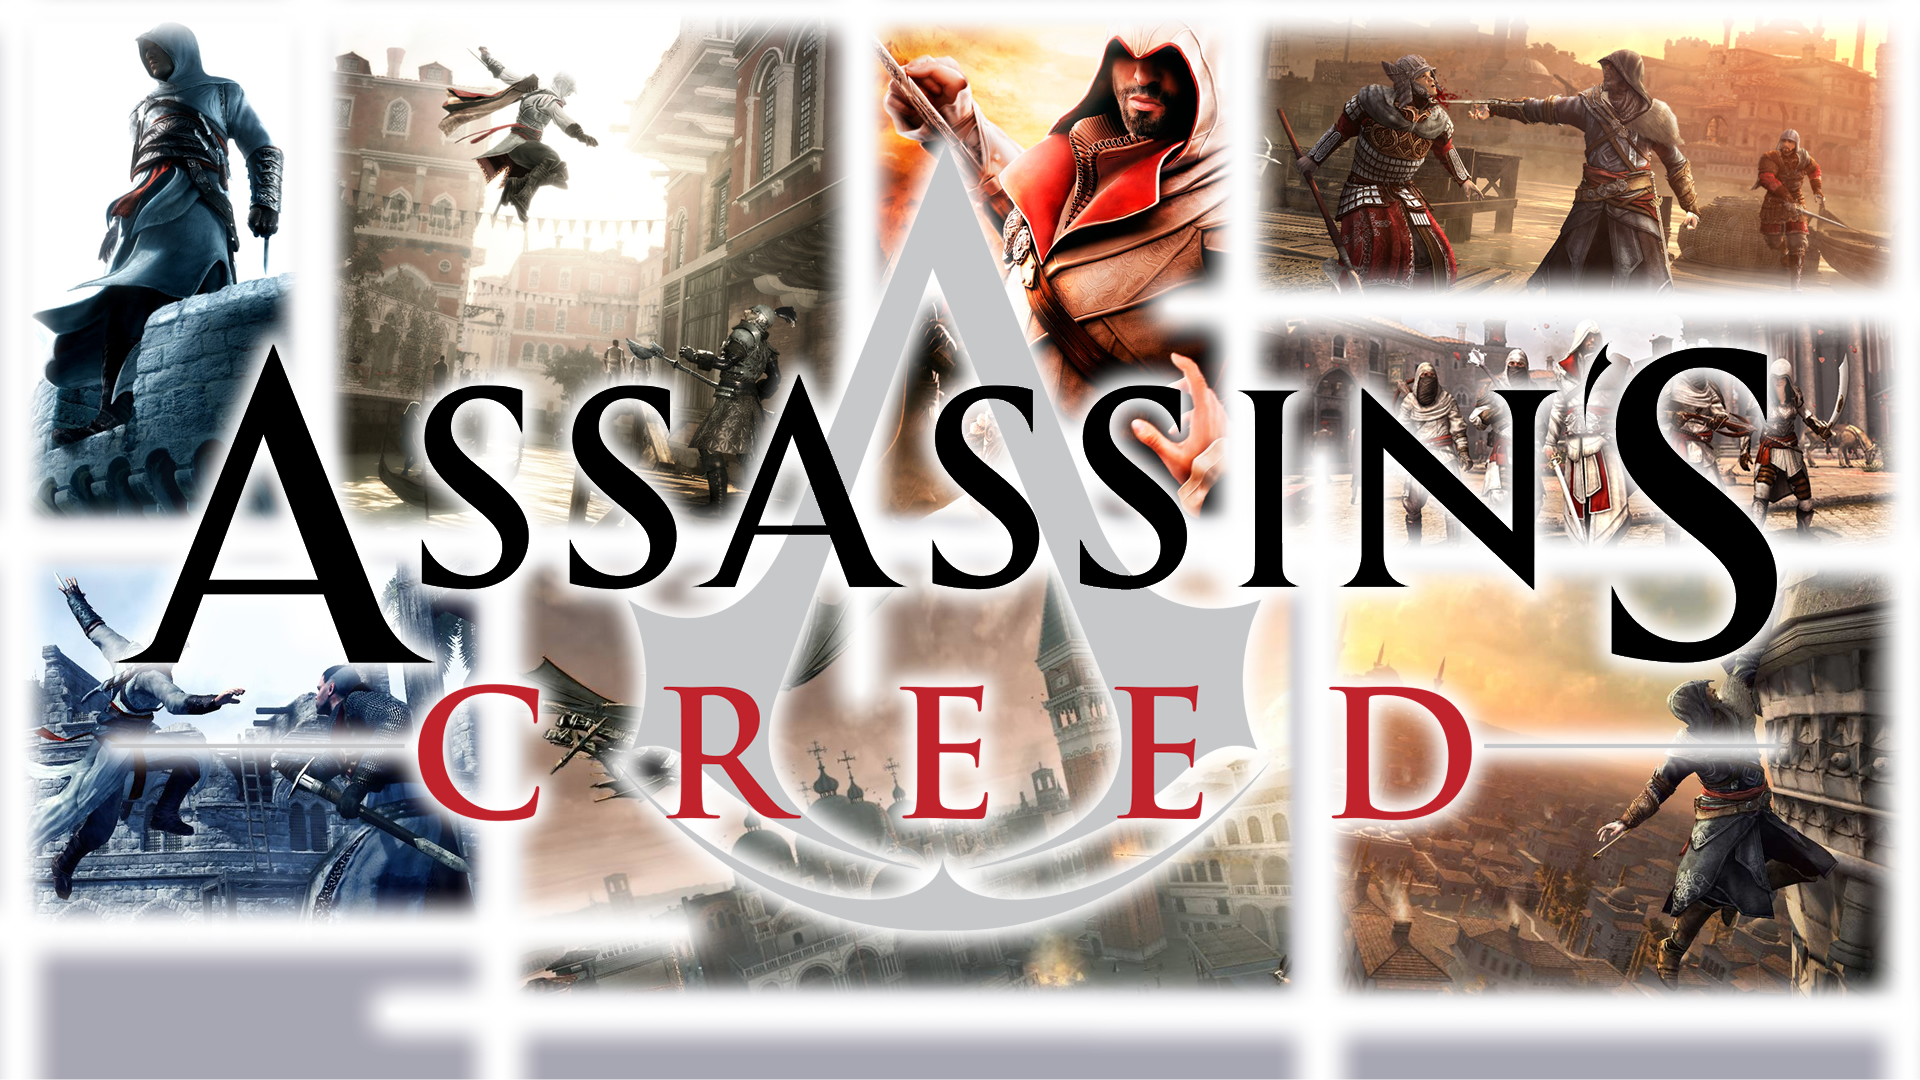 Assassin S Creed Timeline By Stormy94 On Deviantart